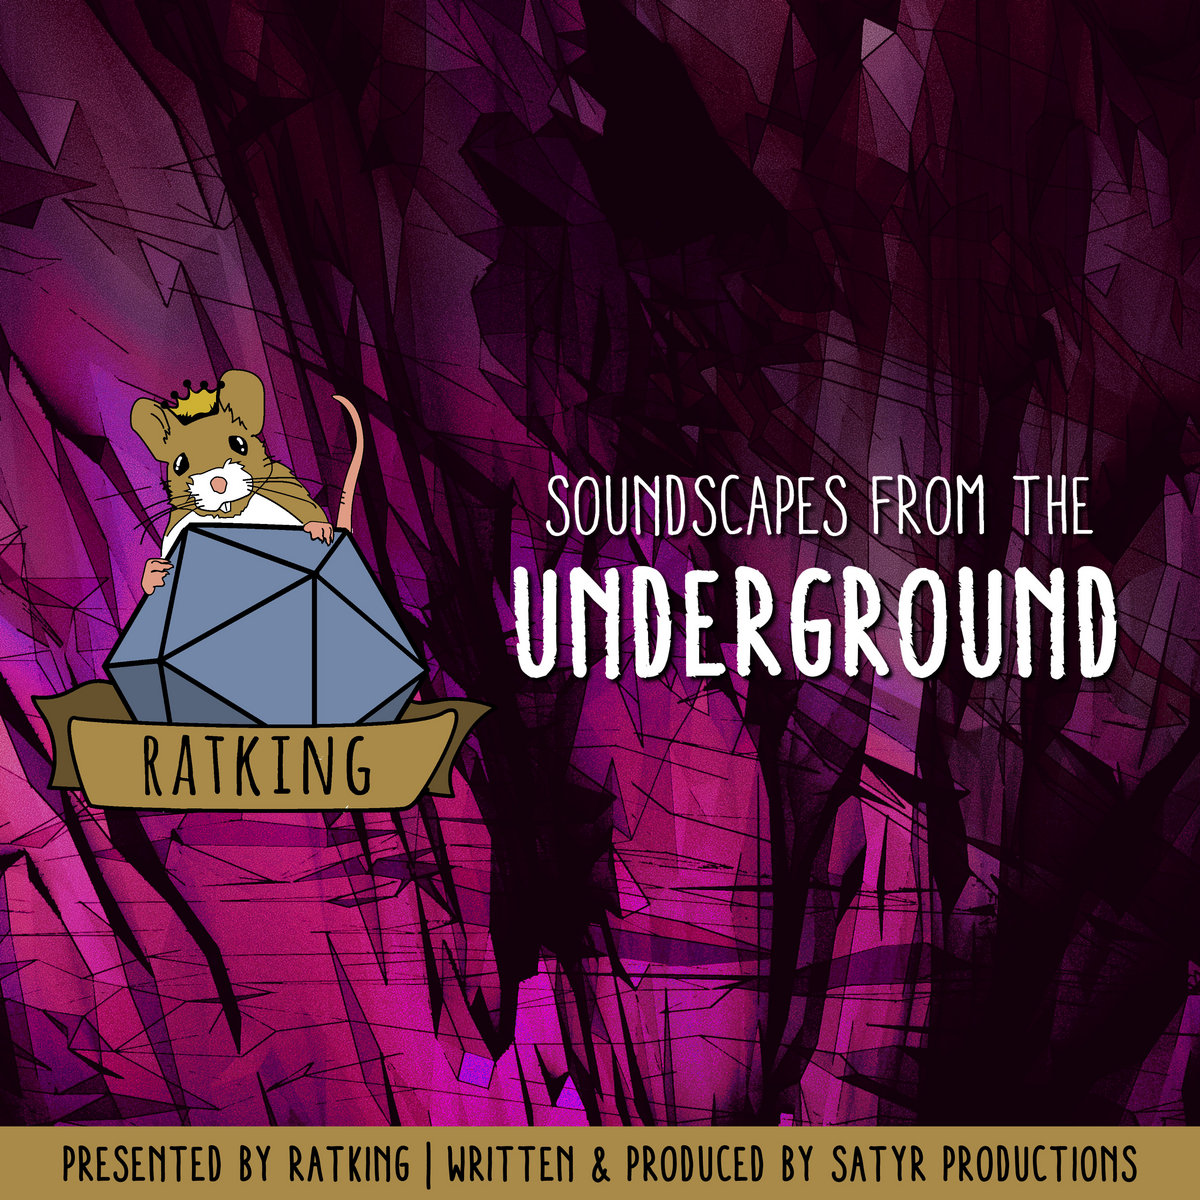 Soundscapes from the Underground